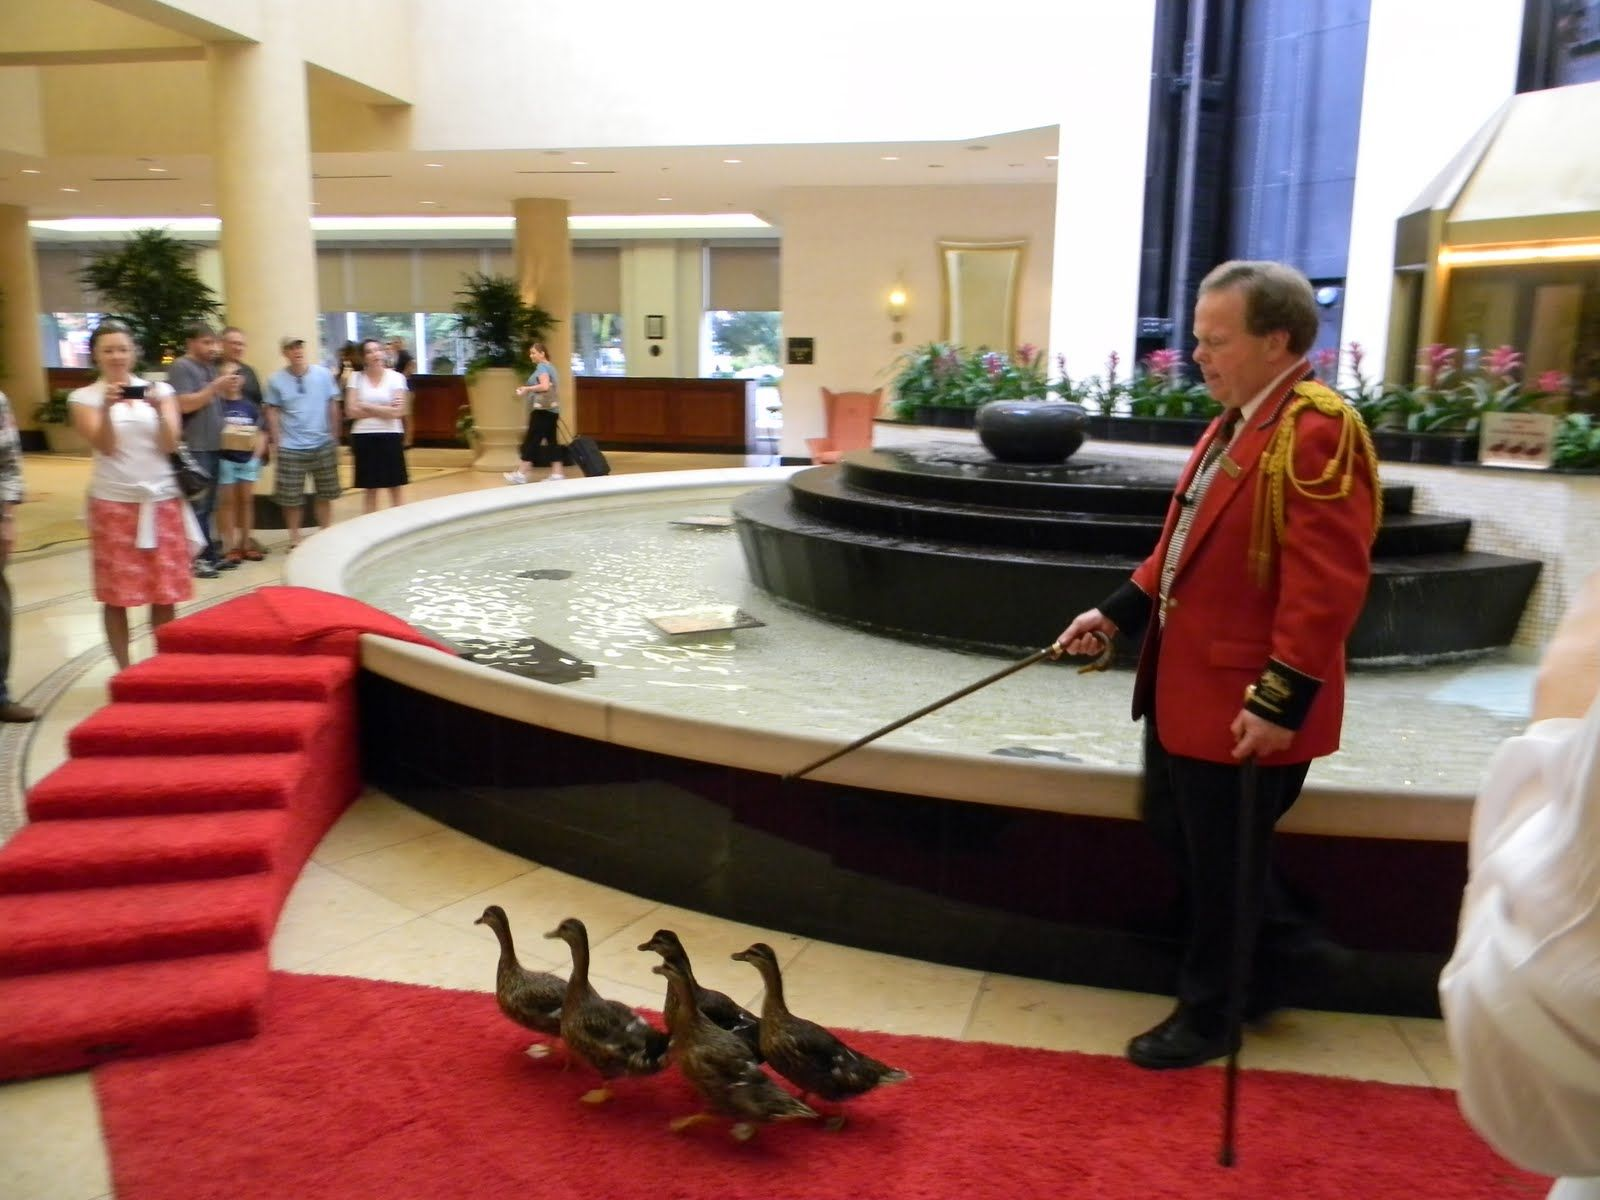 20.DUCK MASTER(Salary 85,000 ) Some hotels hire these